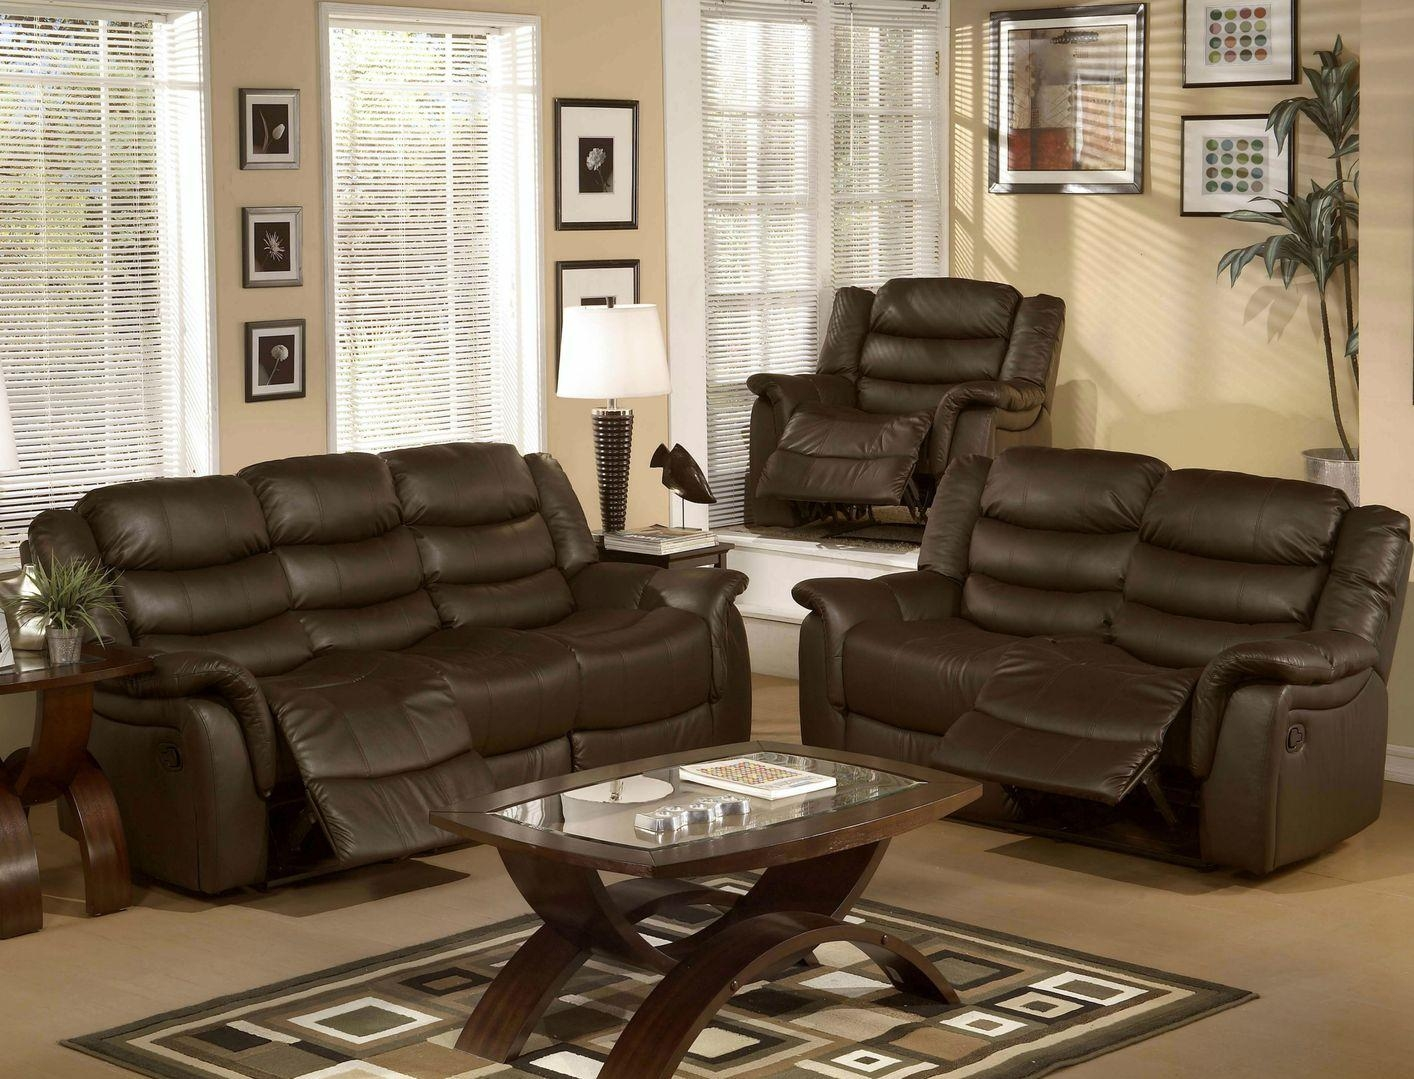 Sofa And Chair Set | Modern Chairs Design Inside Elegant Sofas And Chairs (Image 18 of 20)